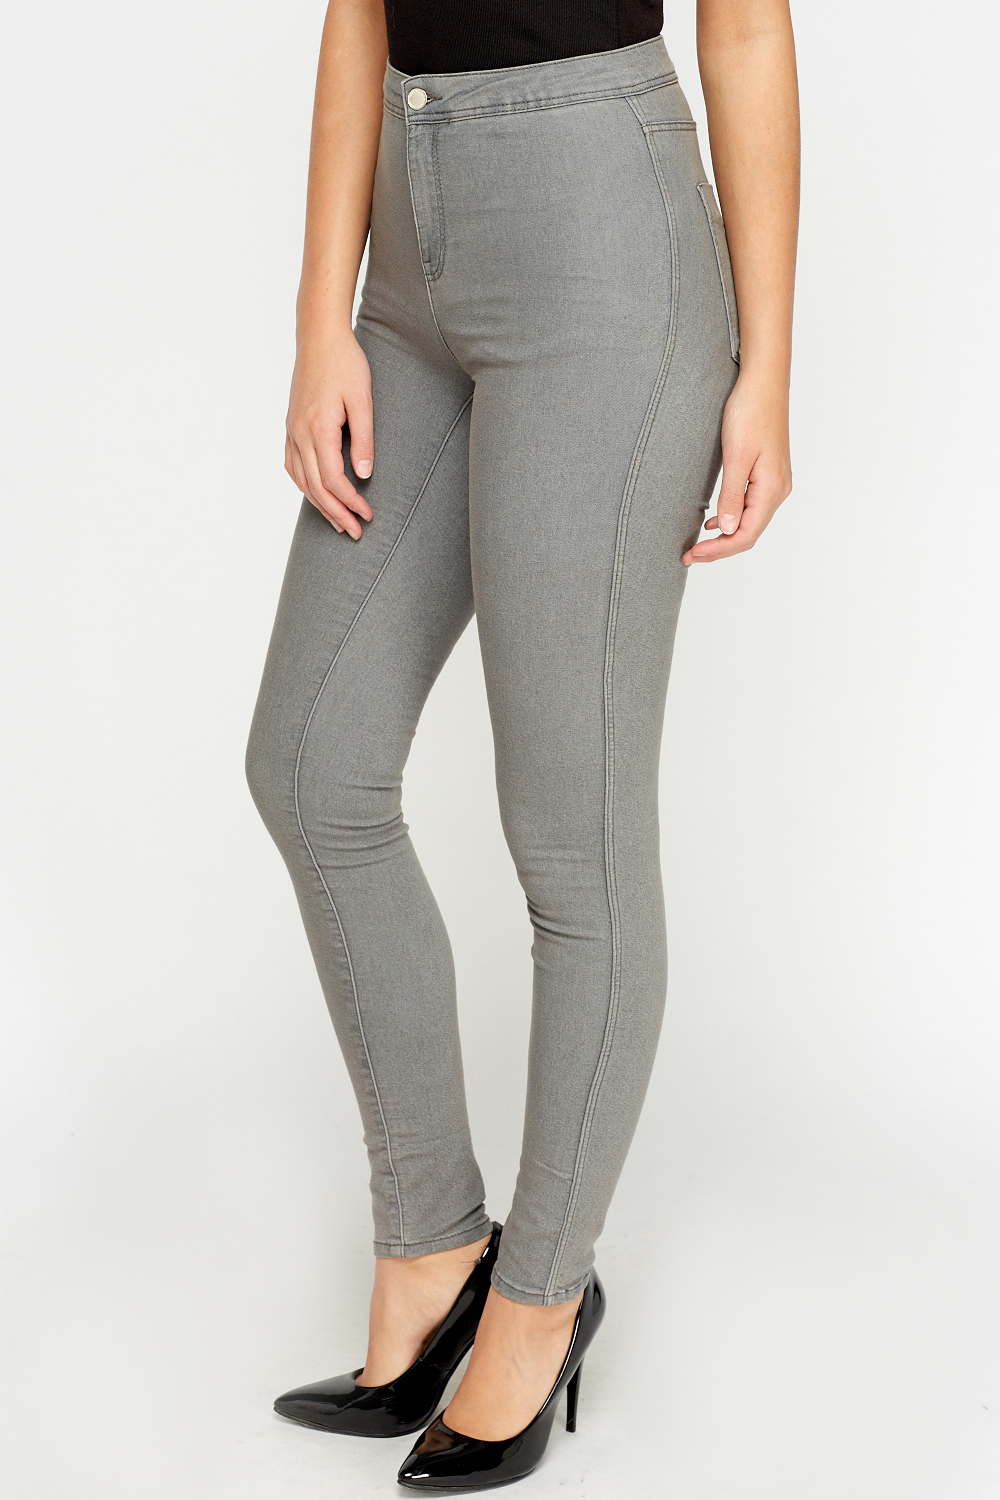 High Waist Skinny Grey Jeans Just 163 5